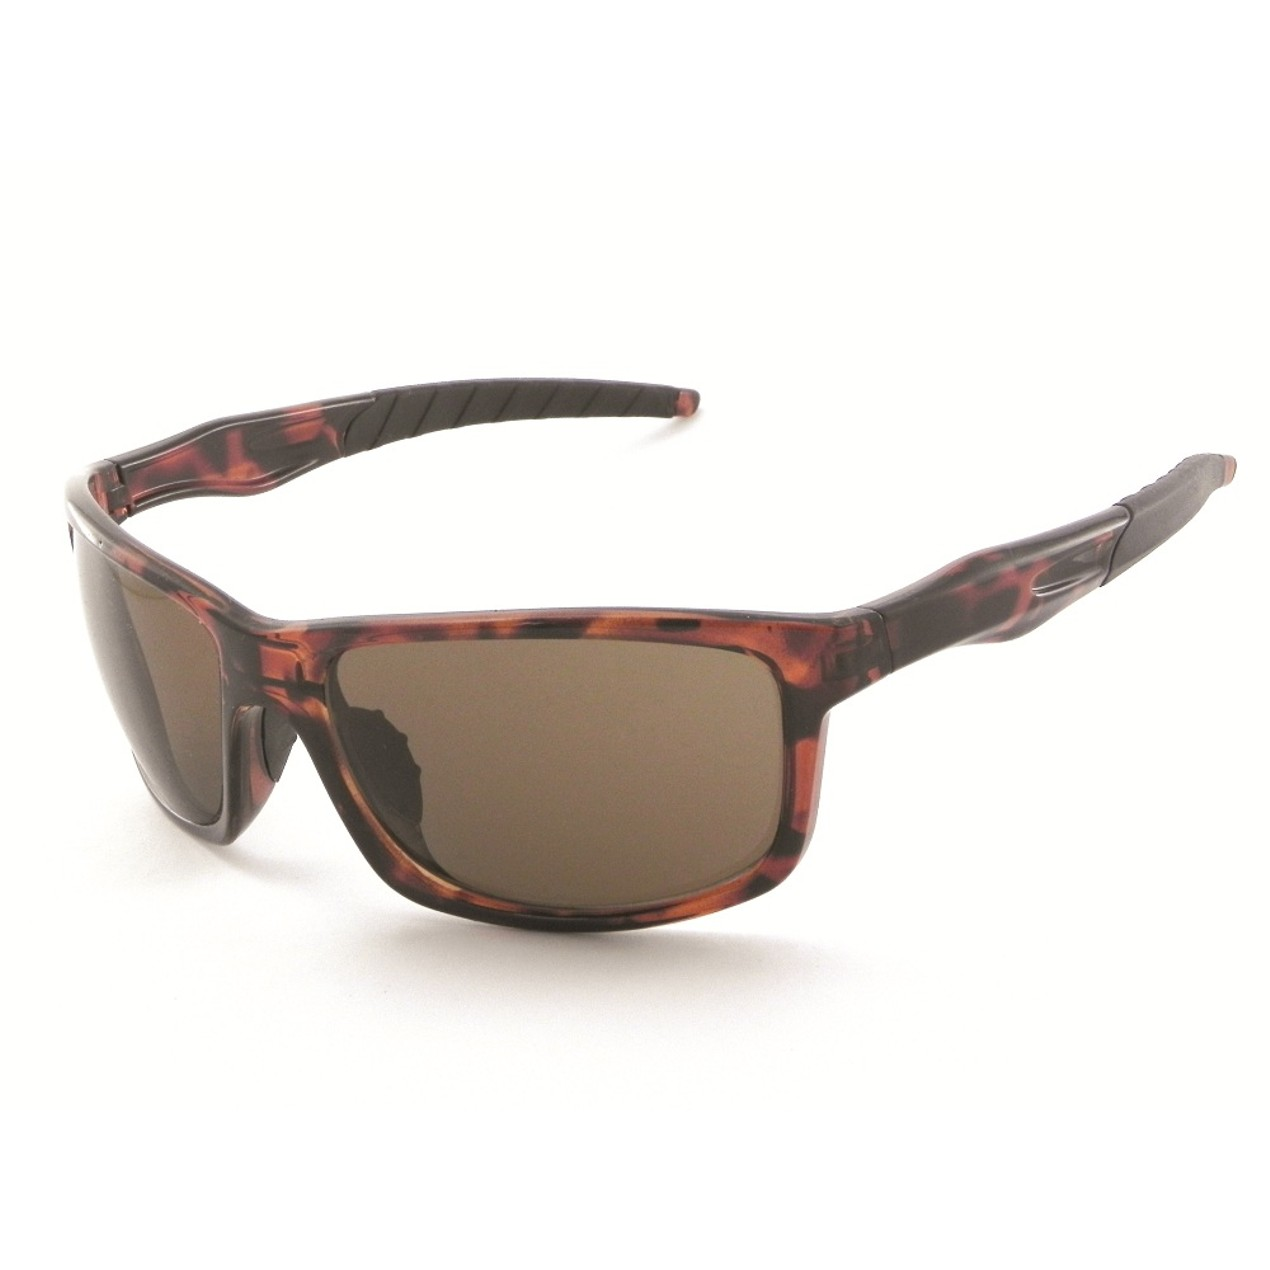 00cff5153479 Chili's Eye Gear SHORELINE Polarized Sport L71601 Sunglasses - Tanga